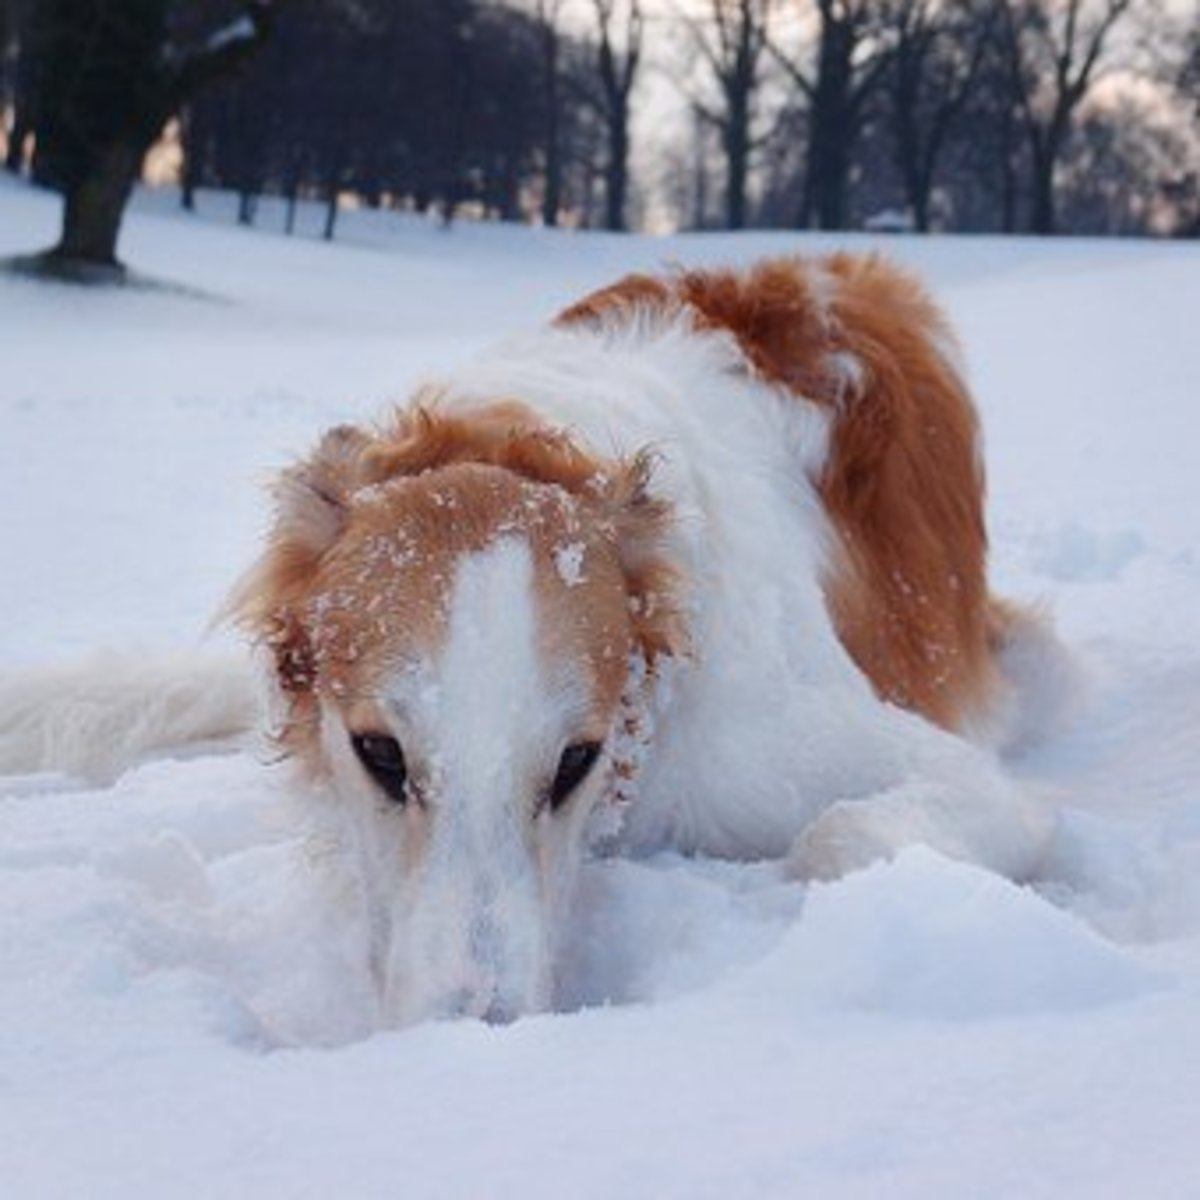 15 Unique Russian Names for Your Borzoi or Rusian Wolfhound from Slavic Mythology